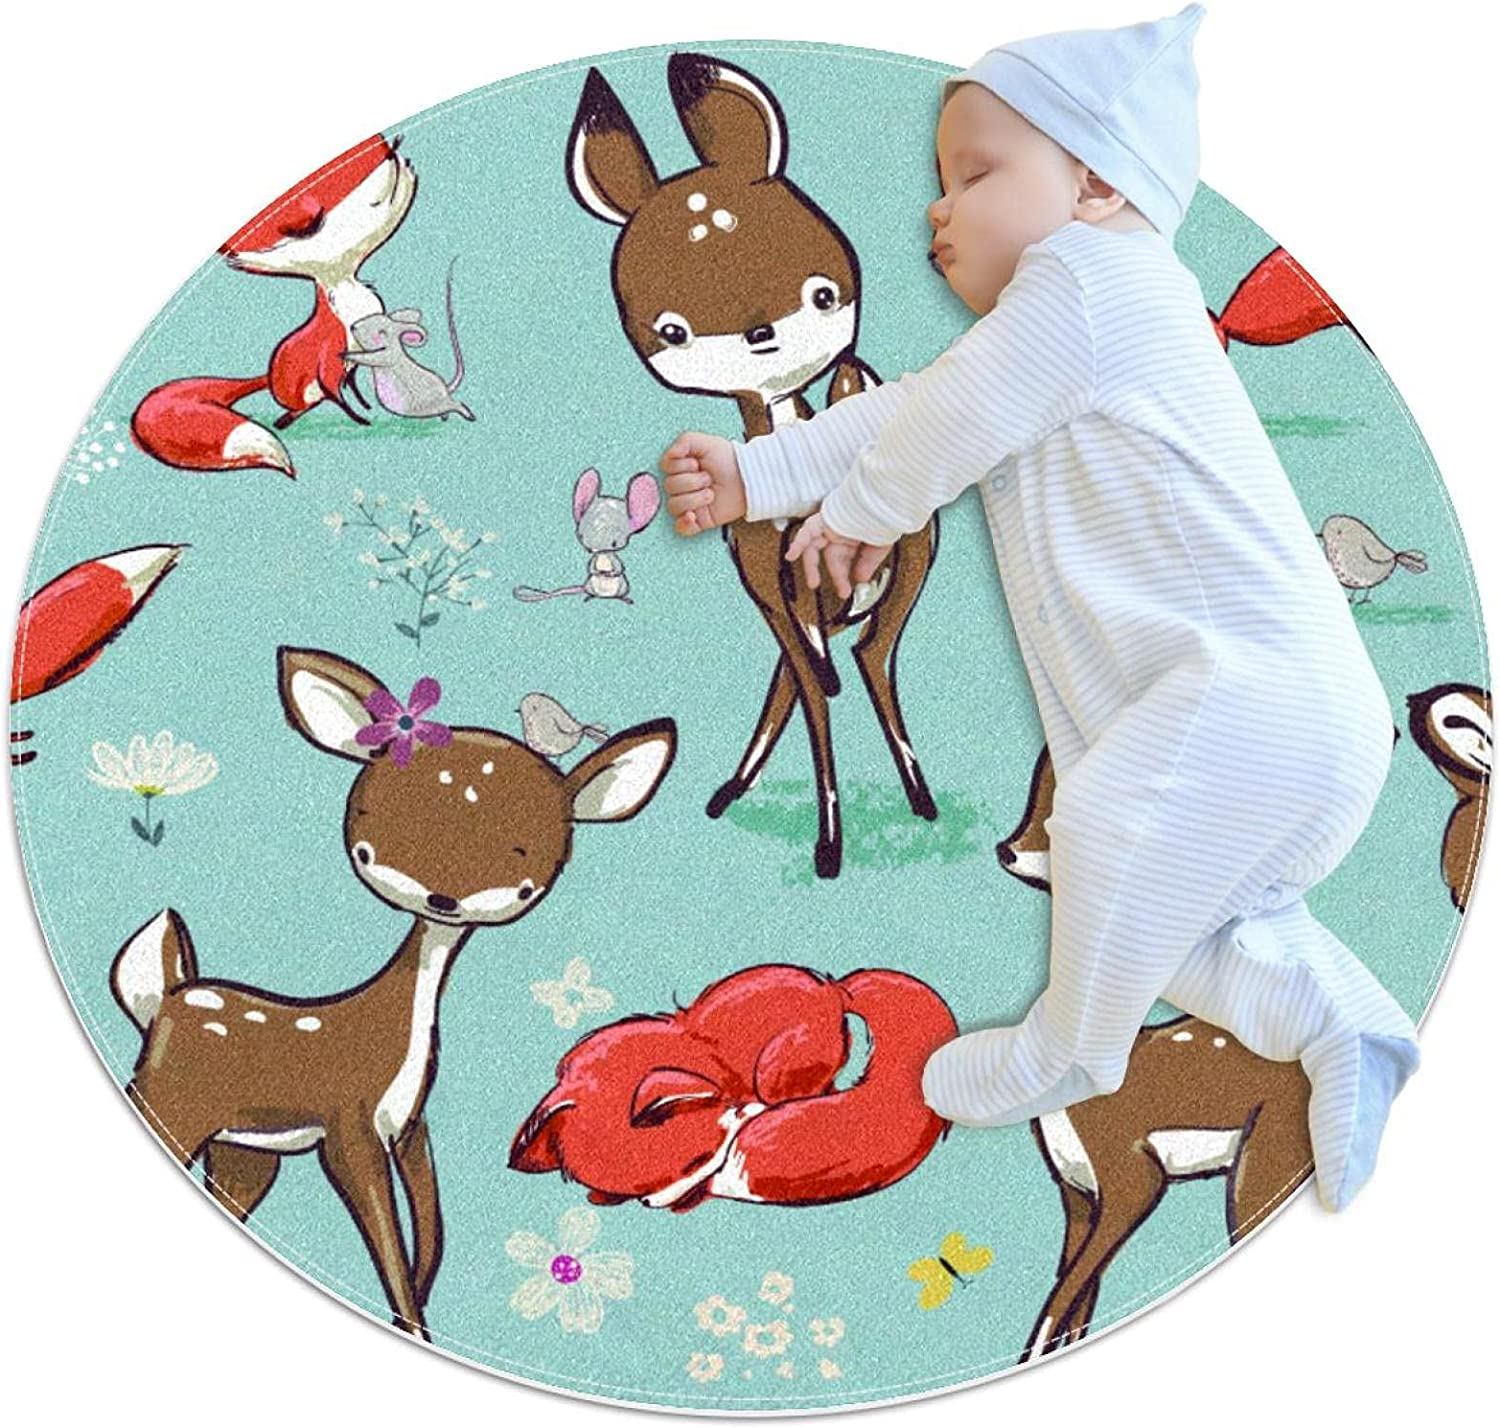 Set with Cute Fox Mouse and Spring new work one after another Deer Polyester Kids Soft Mat Play C 5 ☆ very popular